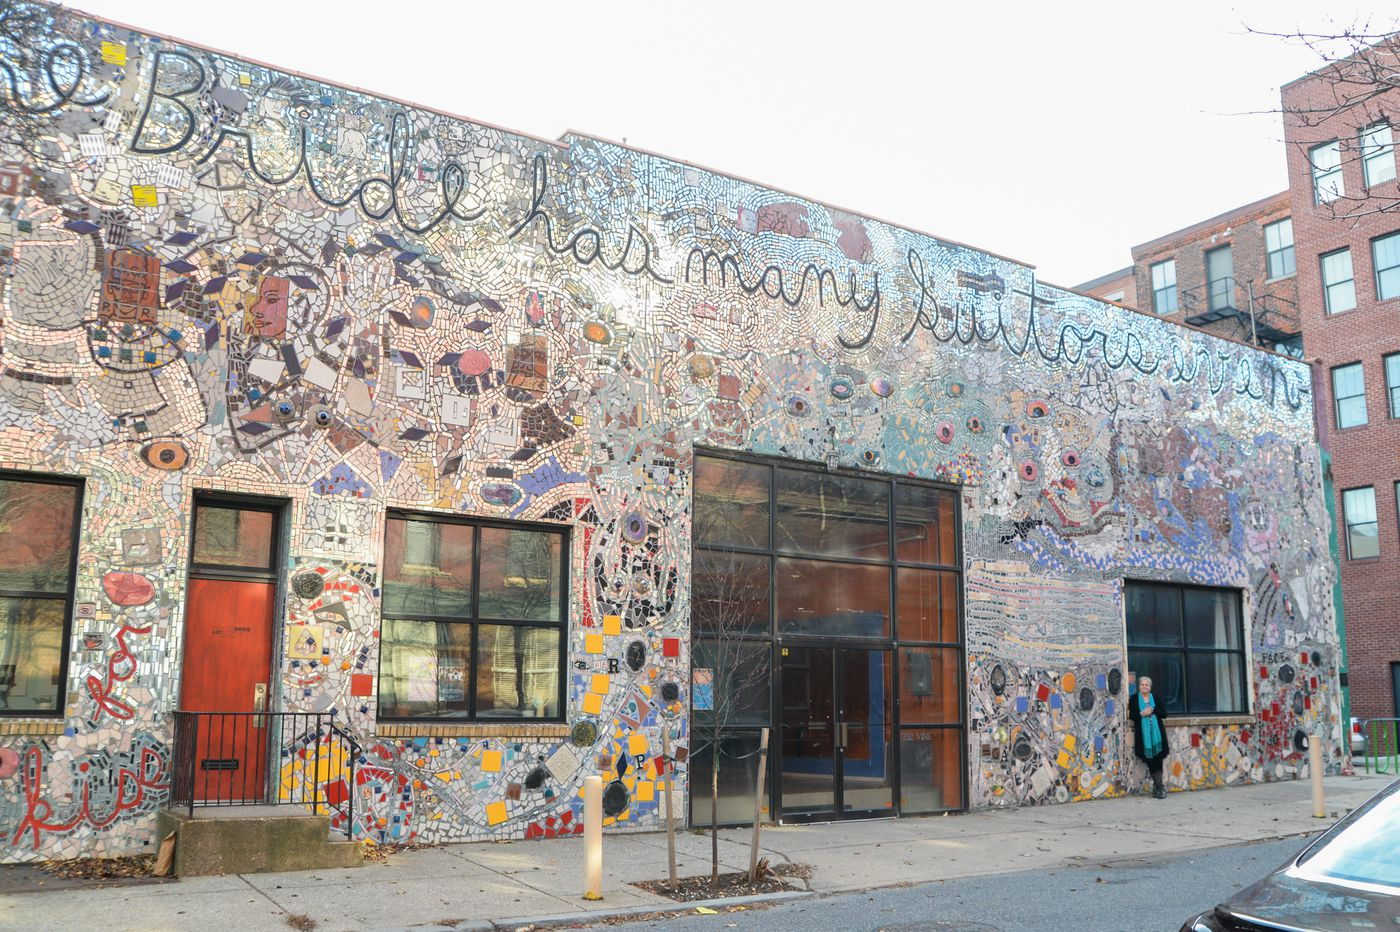 Painted Bride board's plan to sell historic building is 'organizational suicide' | Opinion